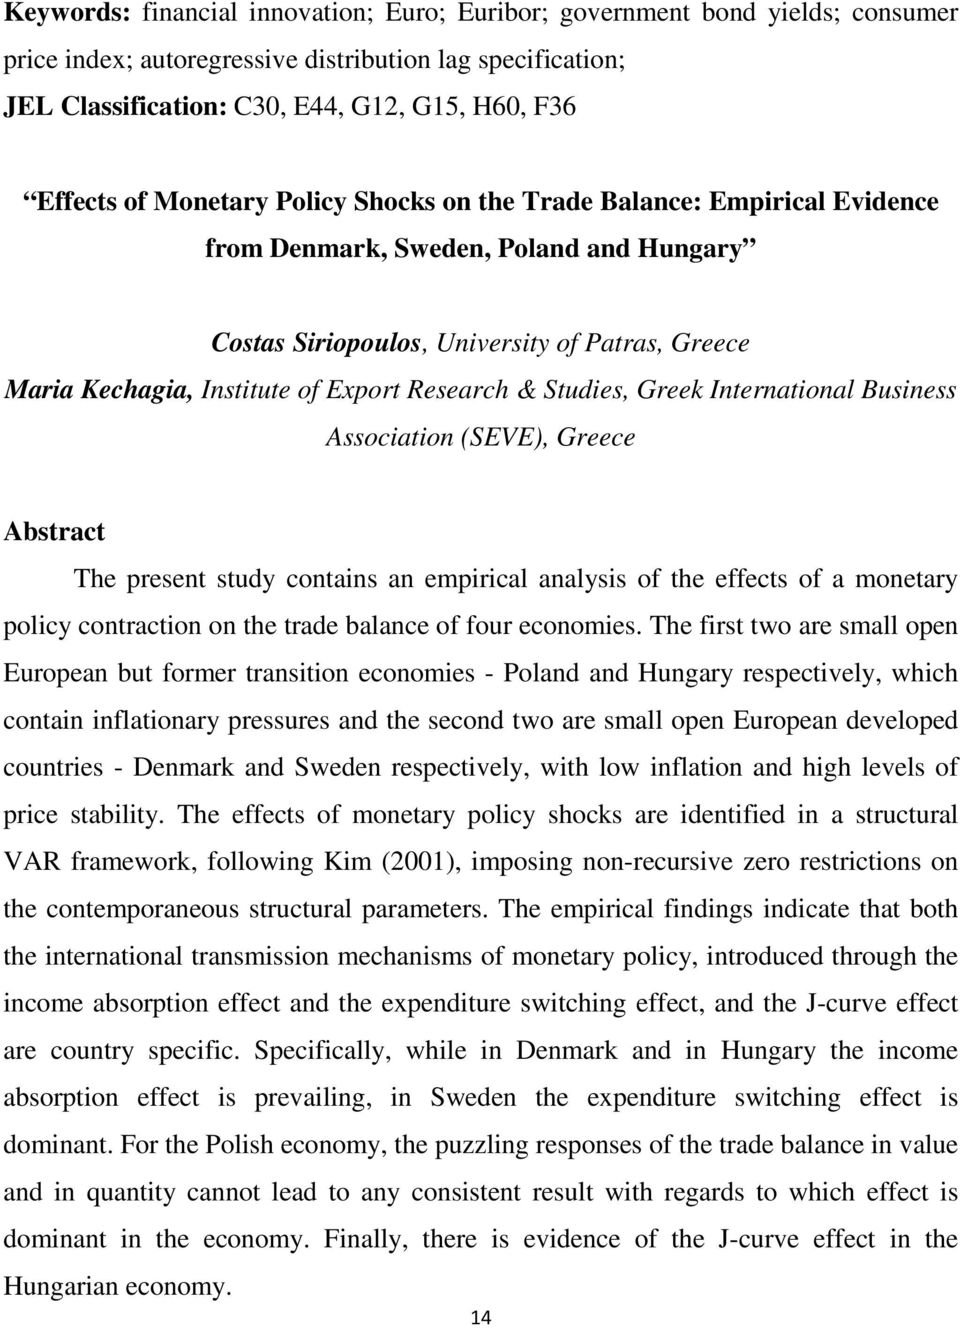 & Studies, Greek International Business Association (SEVE), Greece The present study contains an empirical analysis of the effects of a monetary policy contraction on the trade balance of four